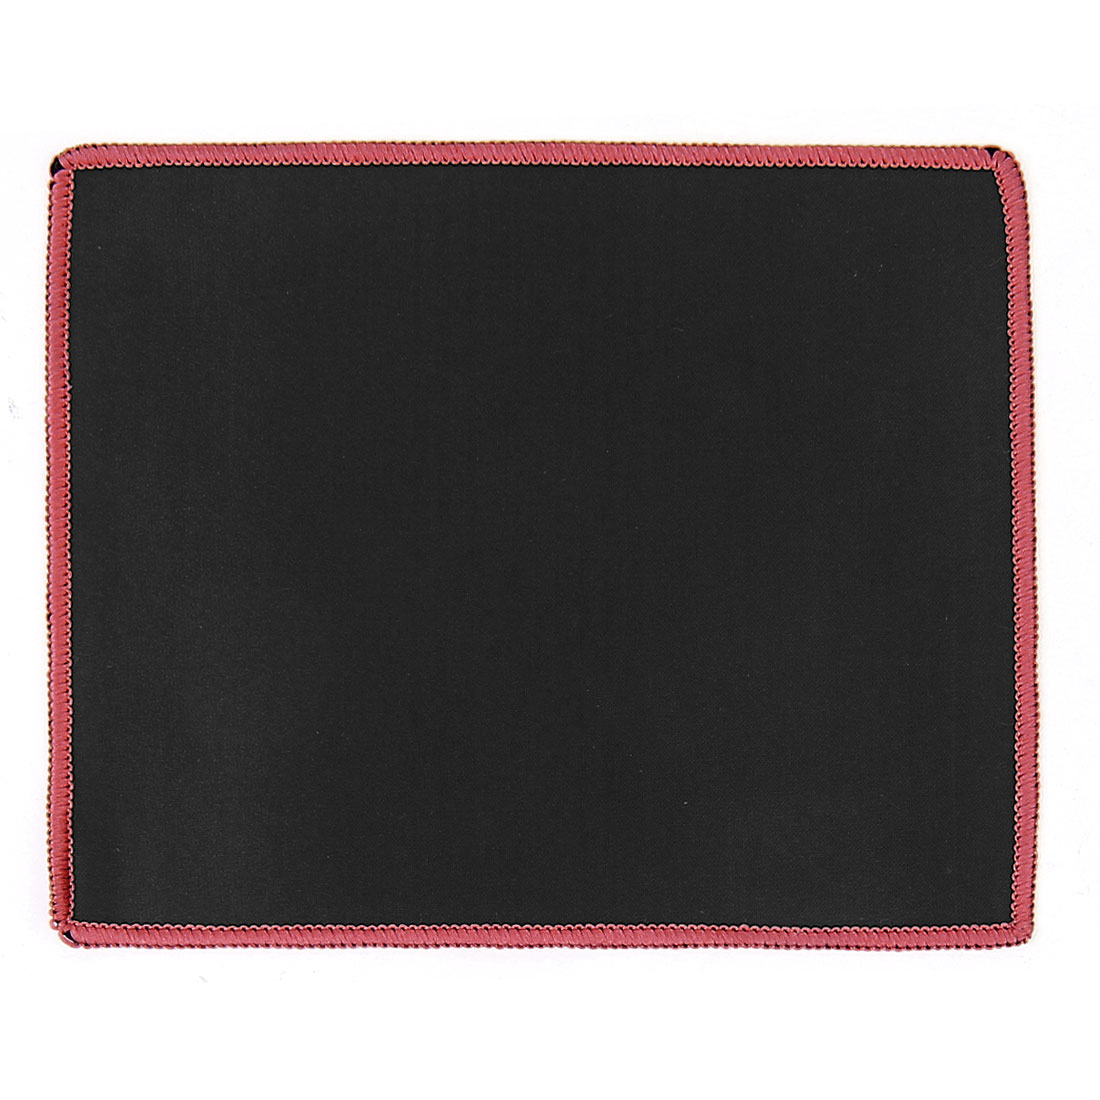 Desktop Computer PC Anti Slip Neoprene Gaming Mouse Mat Pad 25cmx21cm Black Red